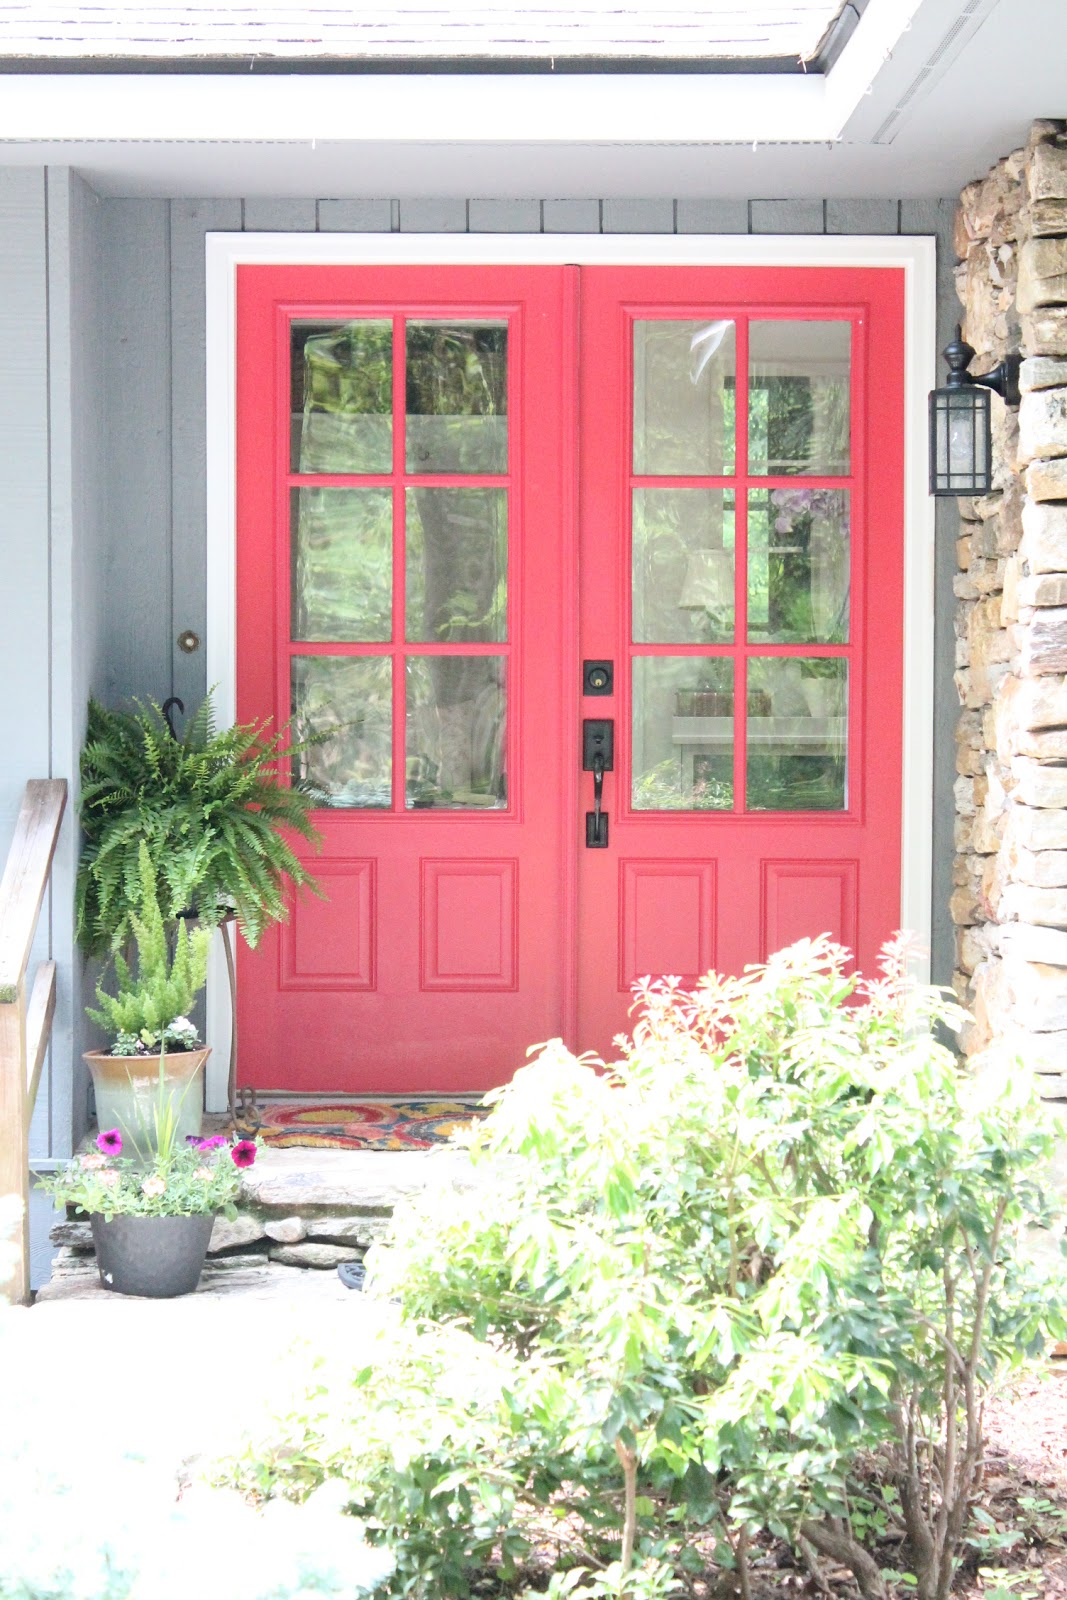 12 Painted Pink Door Ideas So Cute Lolly Jane